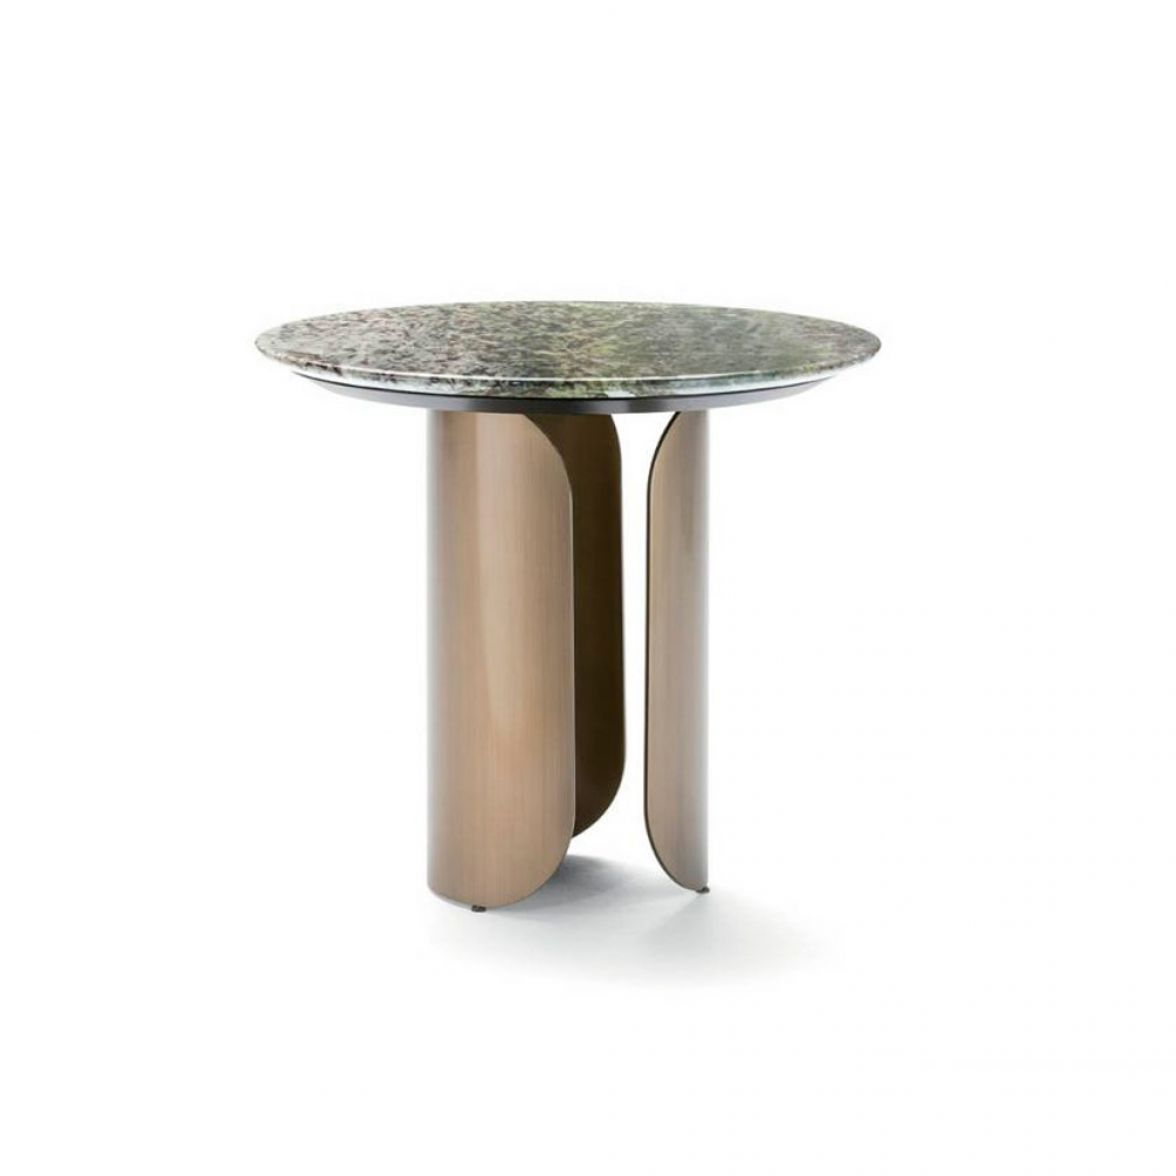 GABRIEL small table